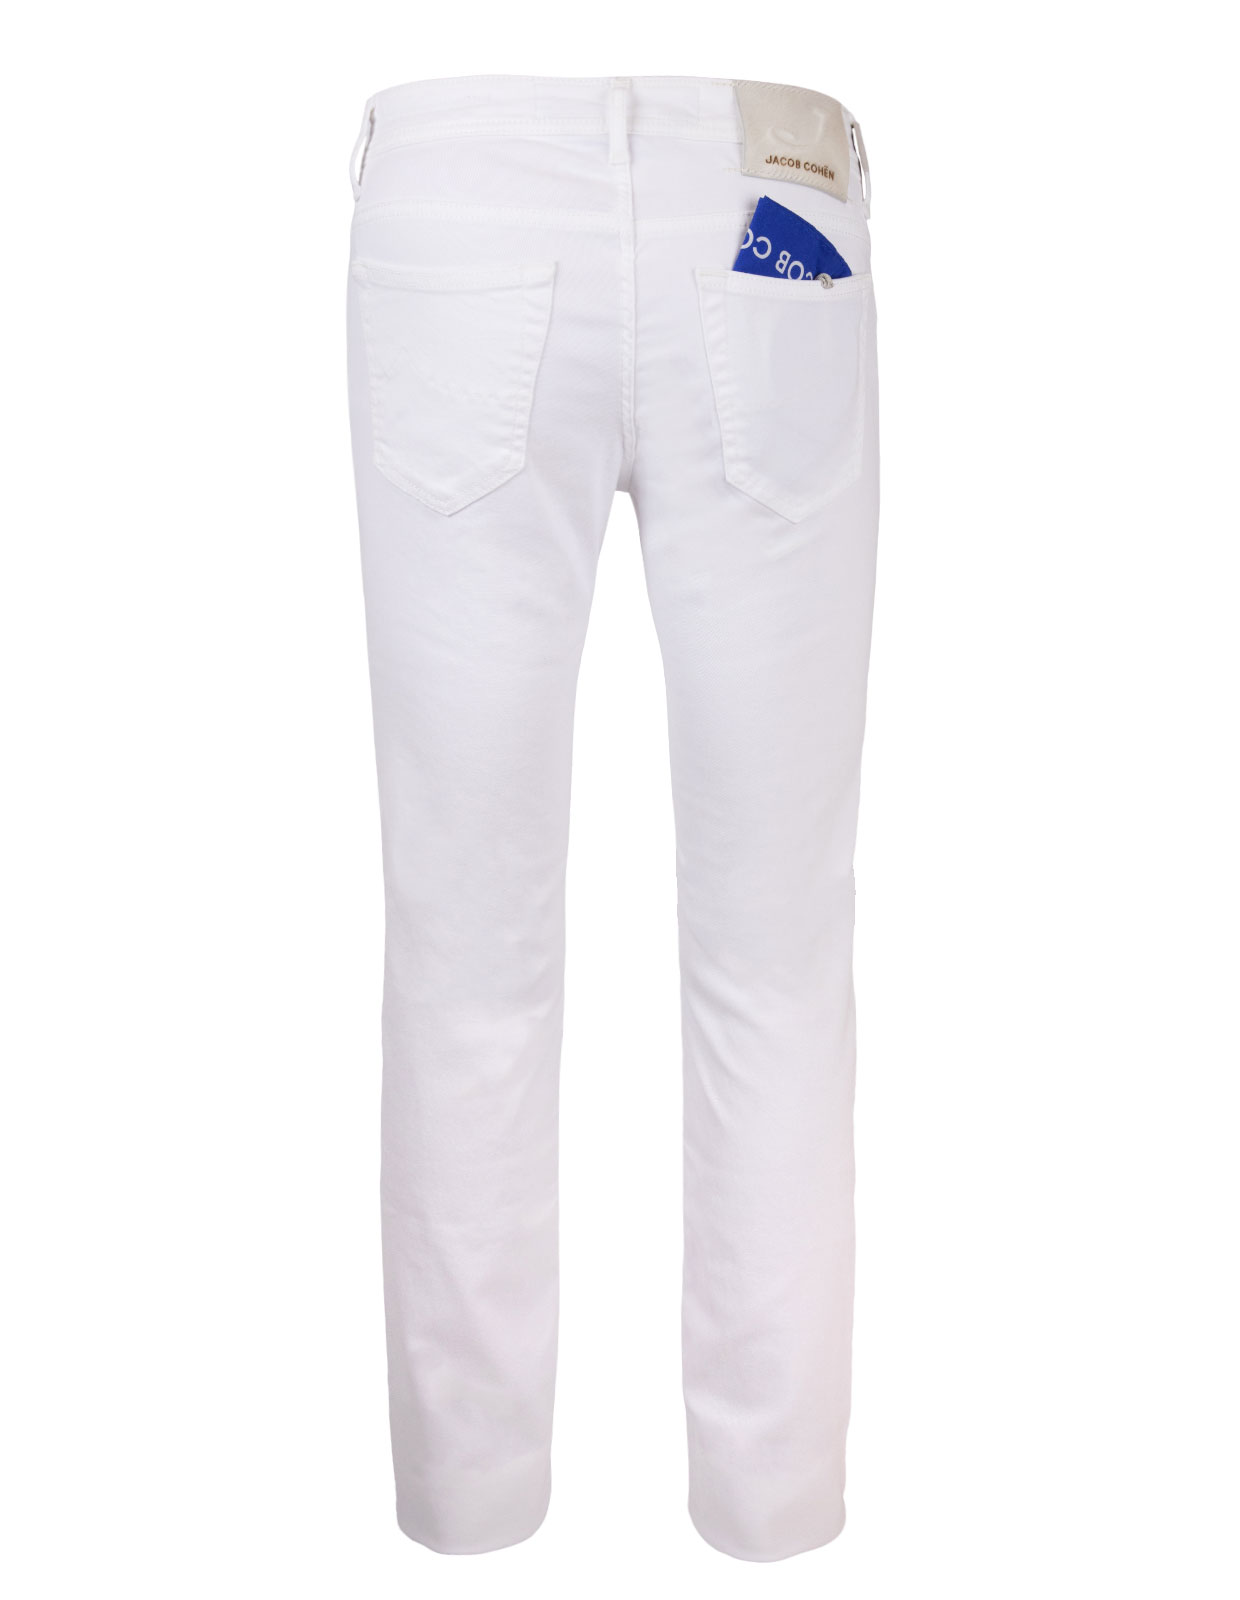 J688 Jeans Denim Stretch White